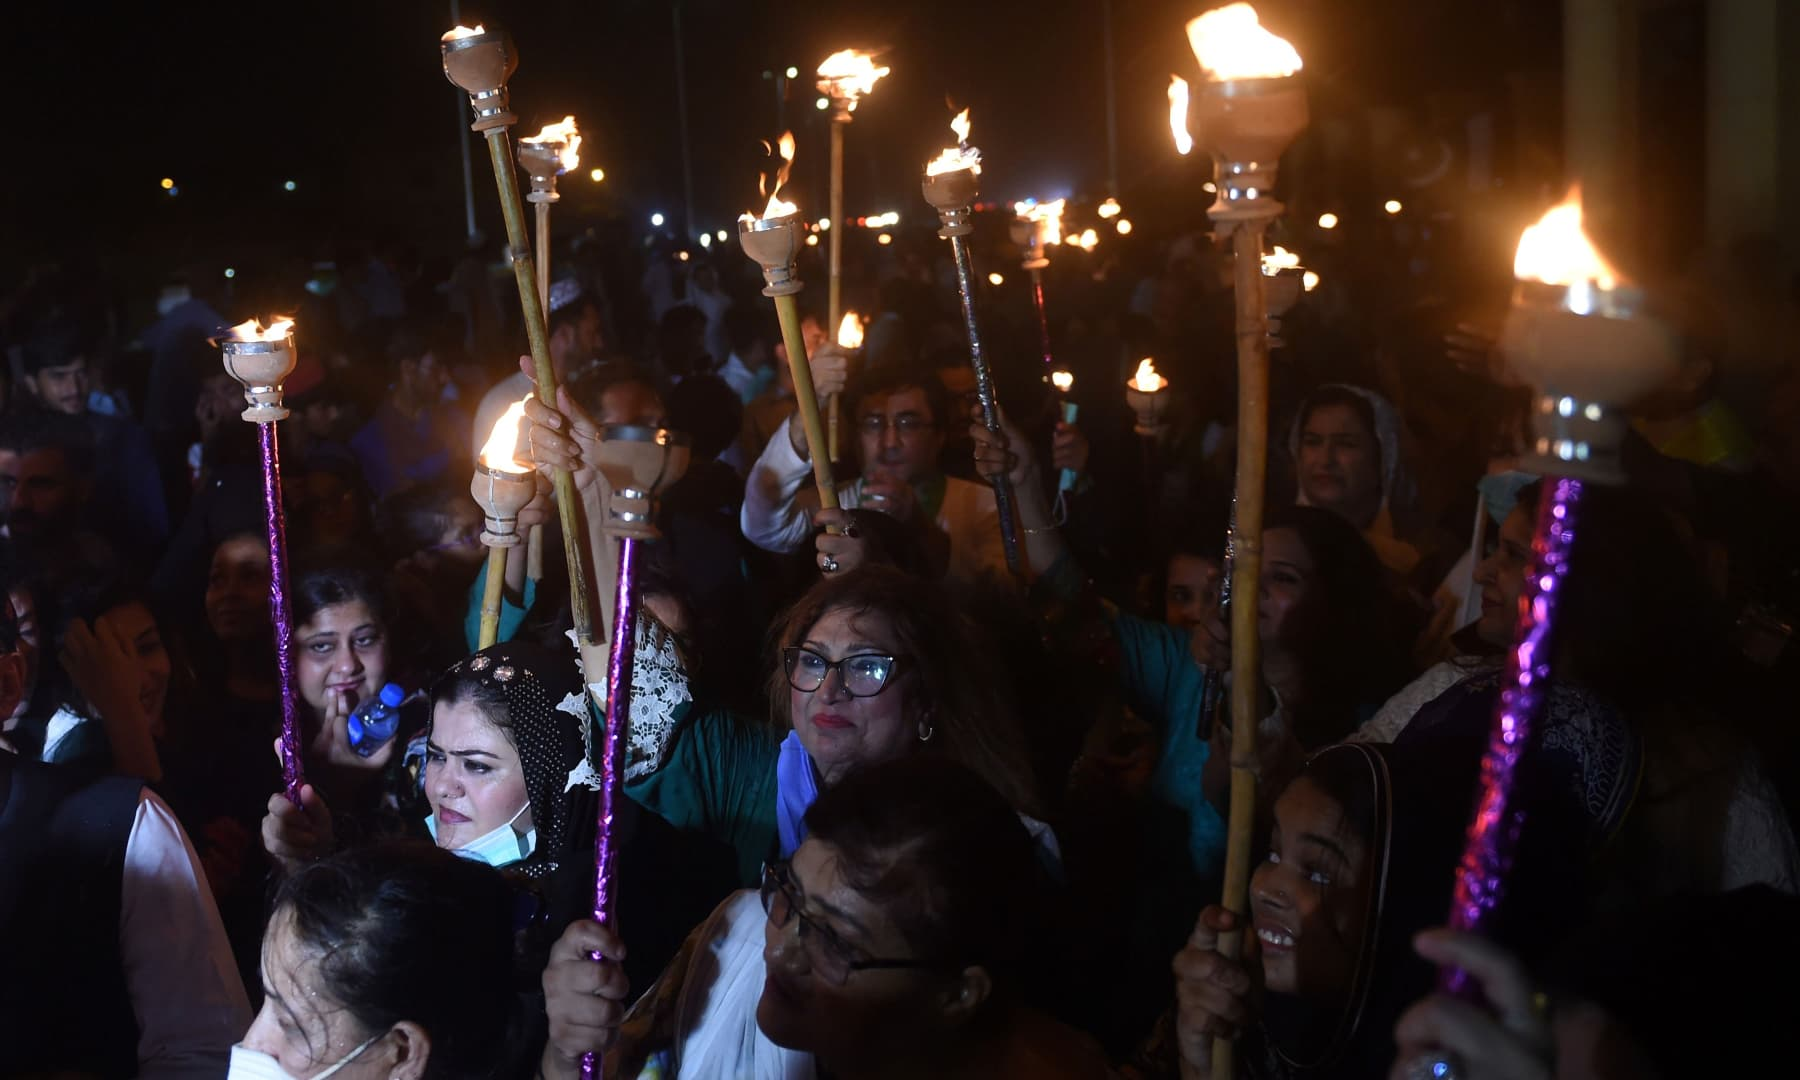 People hold torch lights during Independence Day celebrations in Karachi on August 14. — AFP